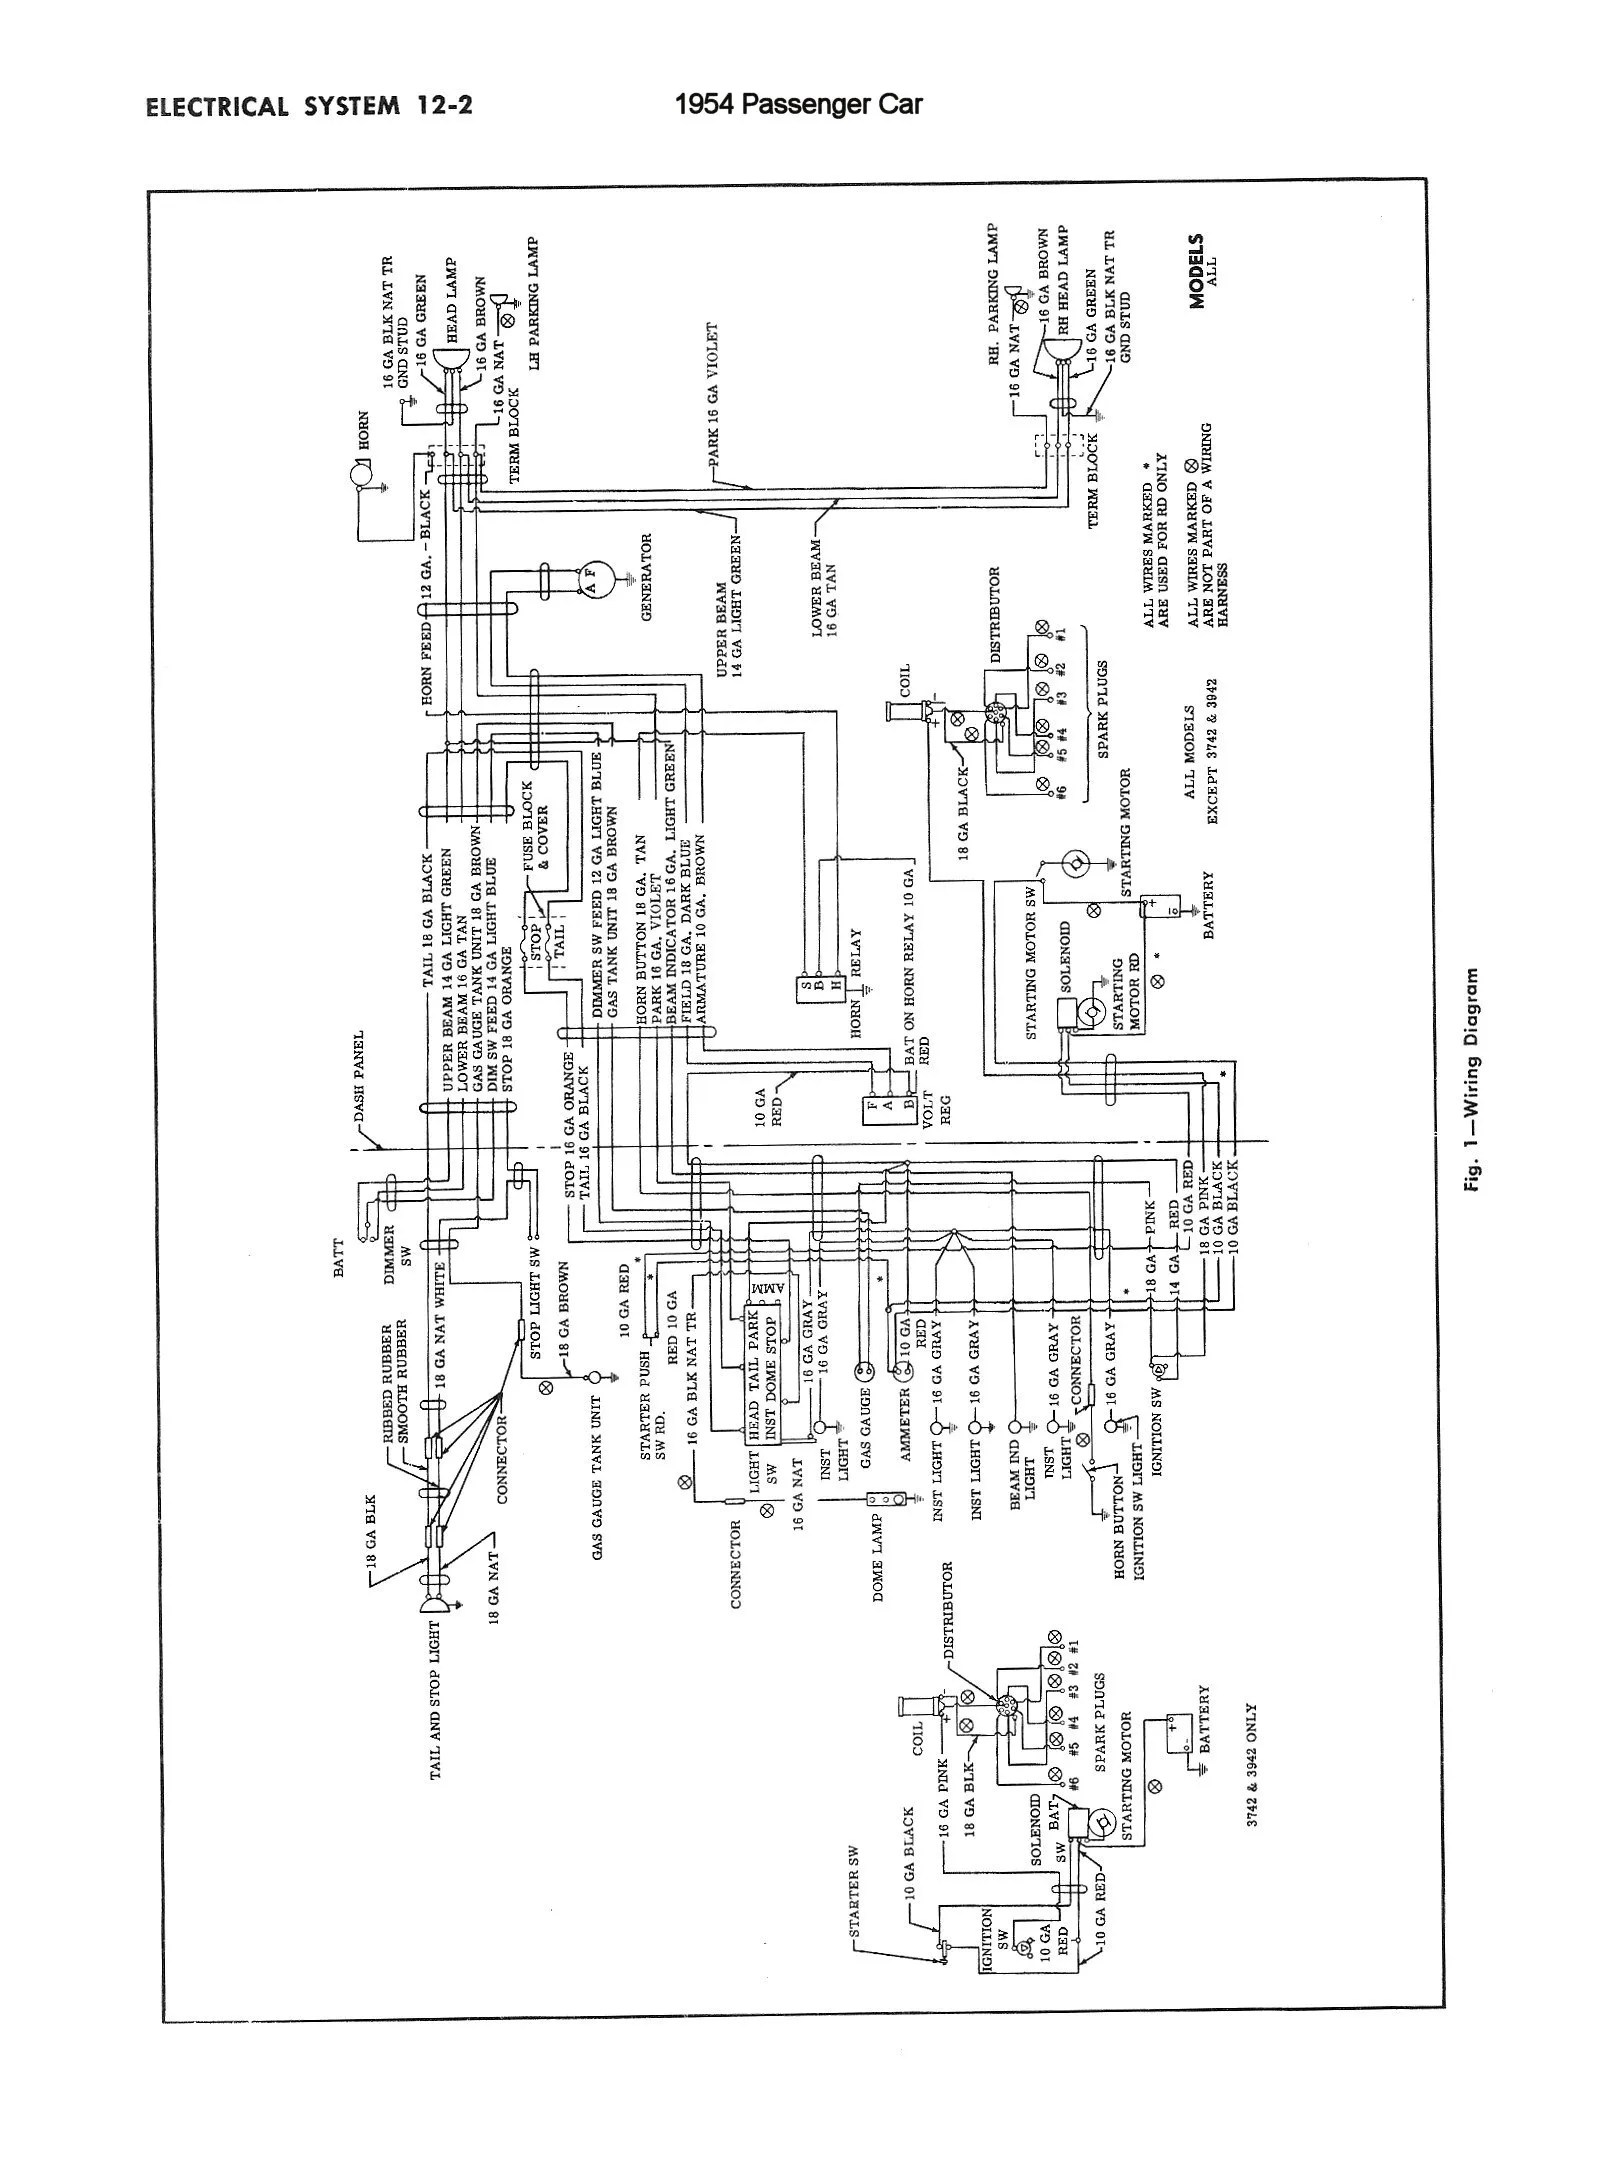 hight resolution of 1954 truck wiring 1954 passenger car wiring 3